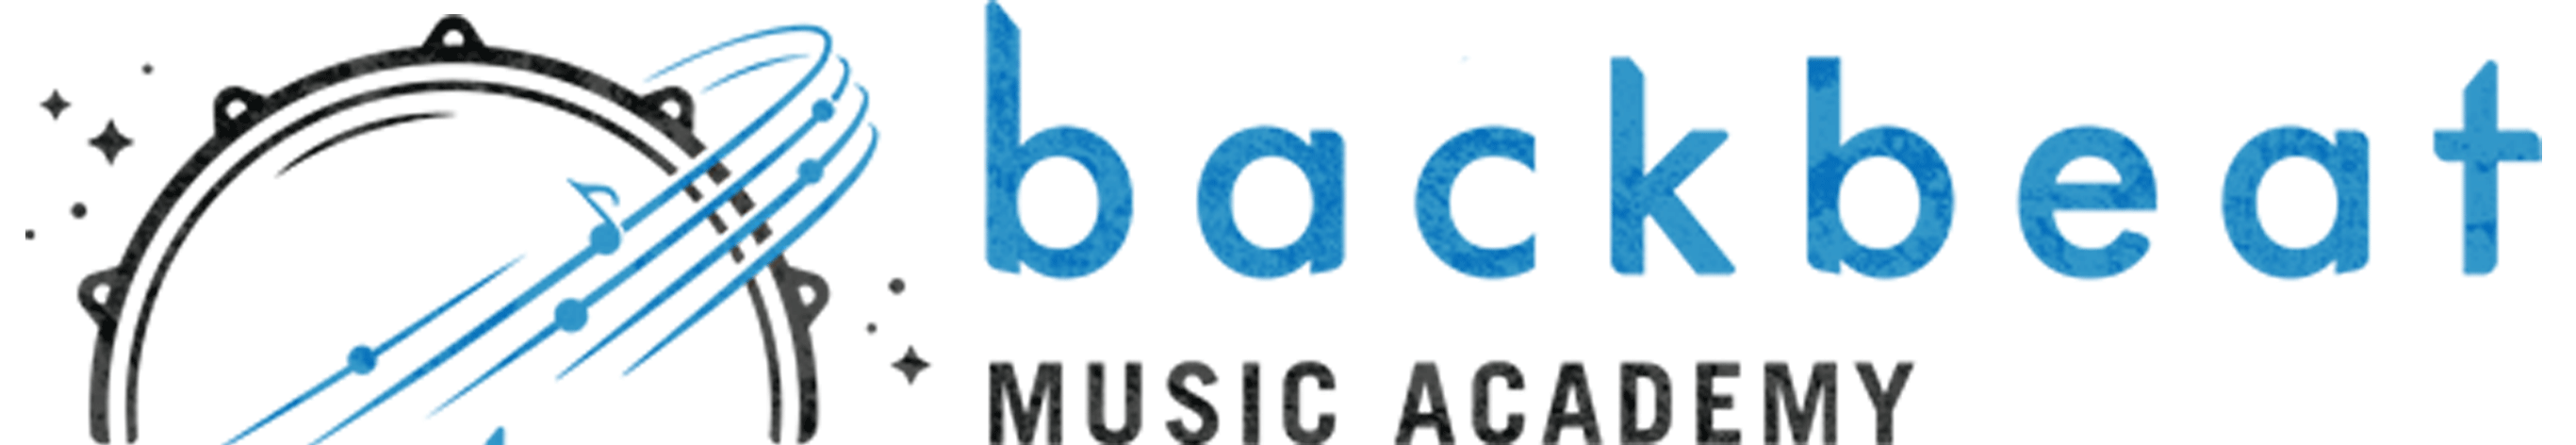 Backbeat Music Academy